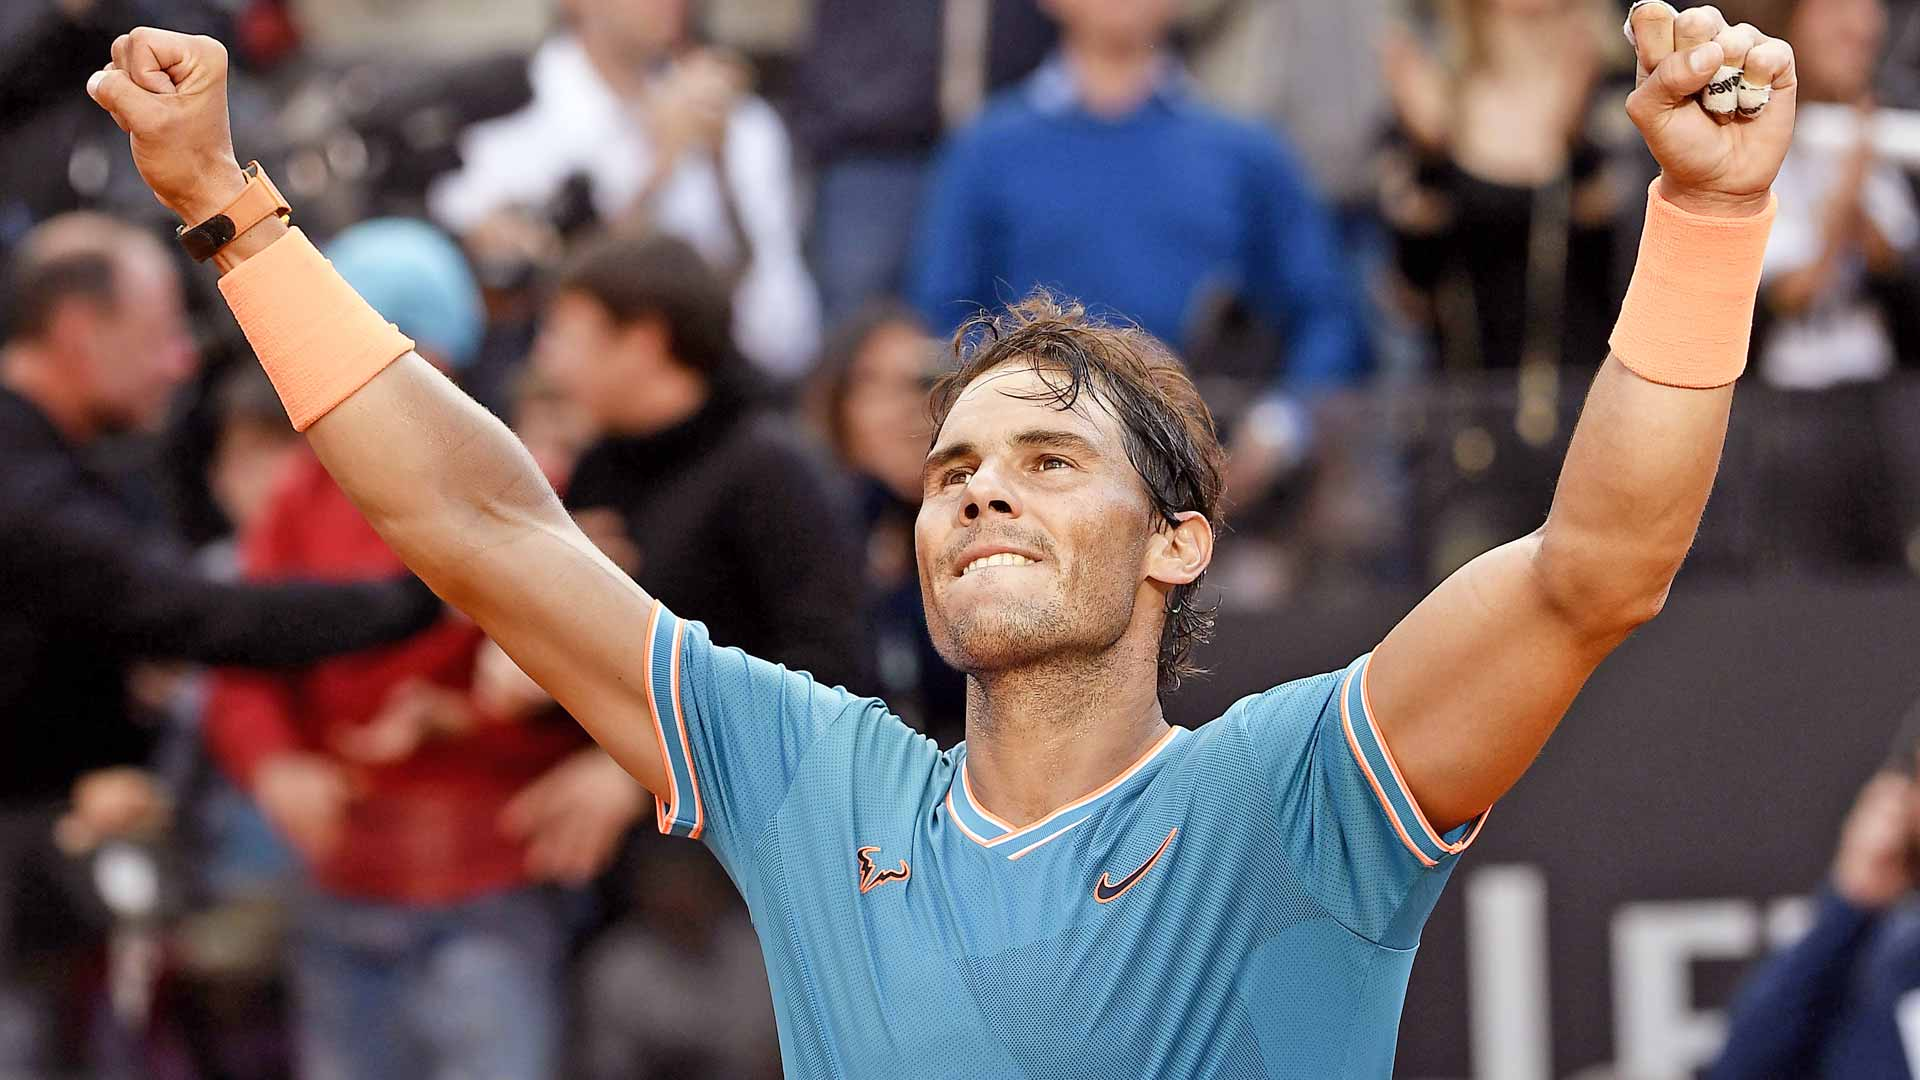 Rafael Nadal celebrates his Rome title